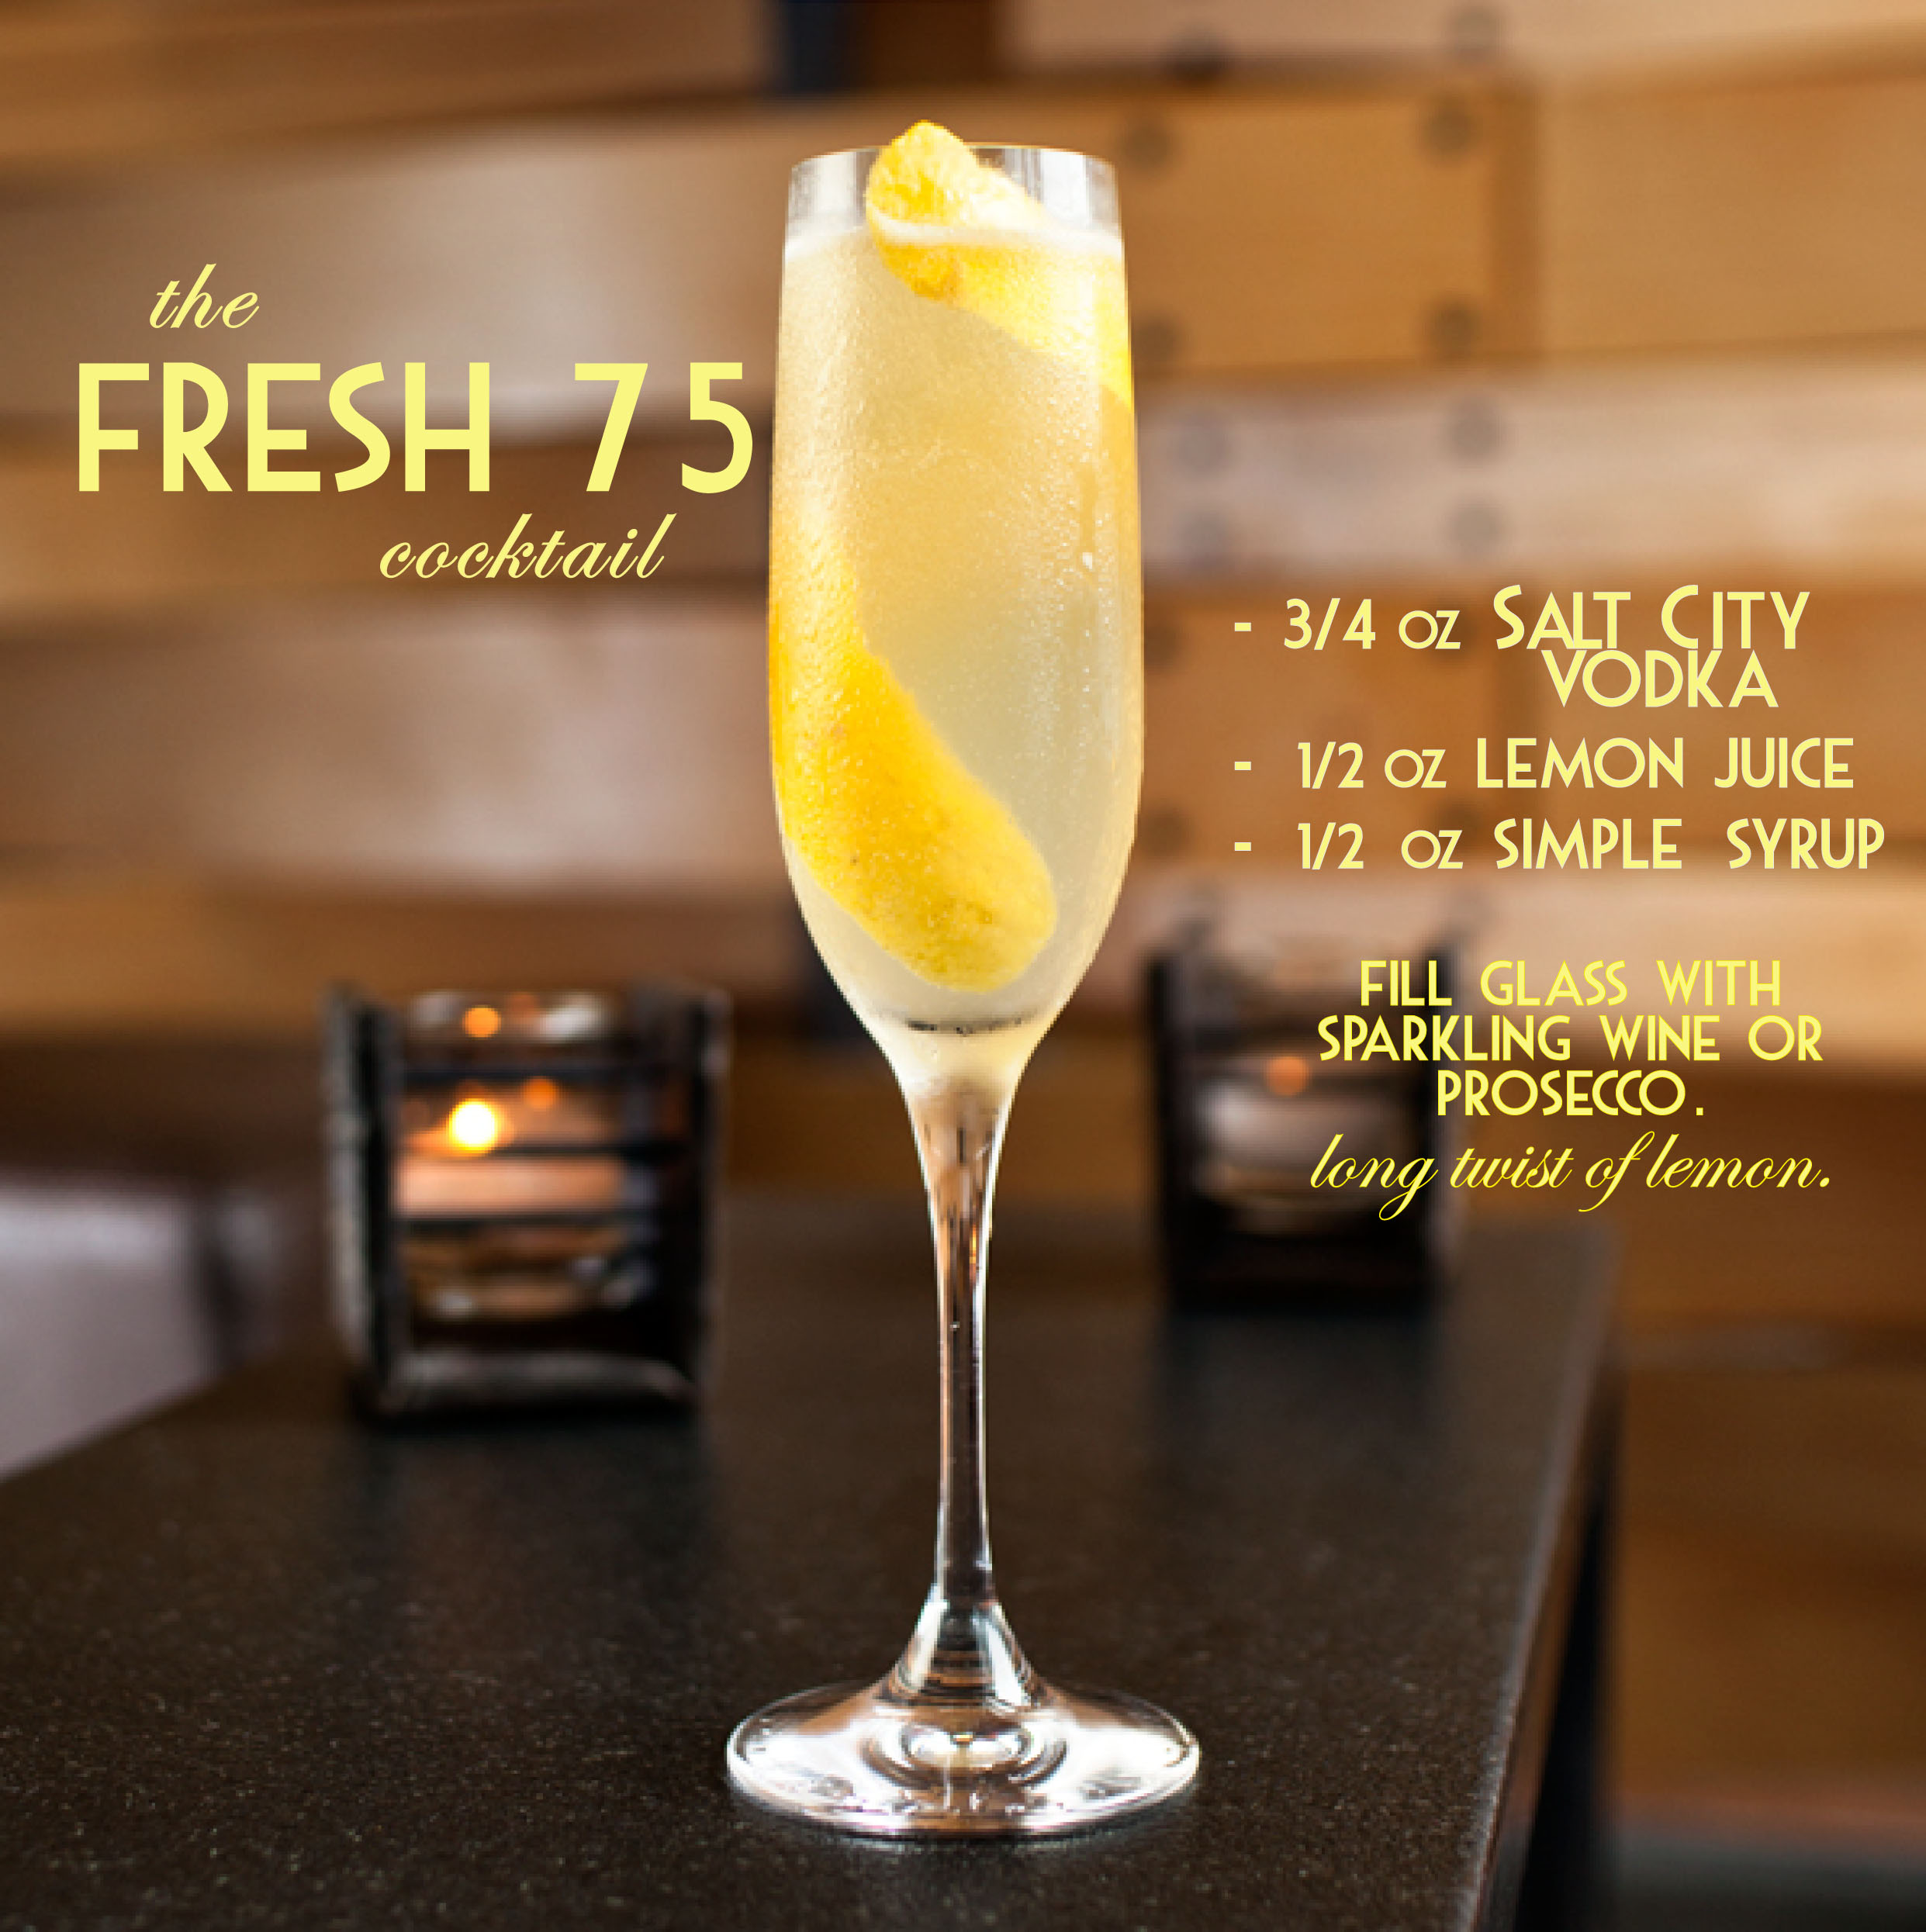 Fresh 75 cocktail